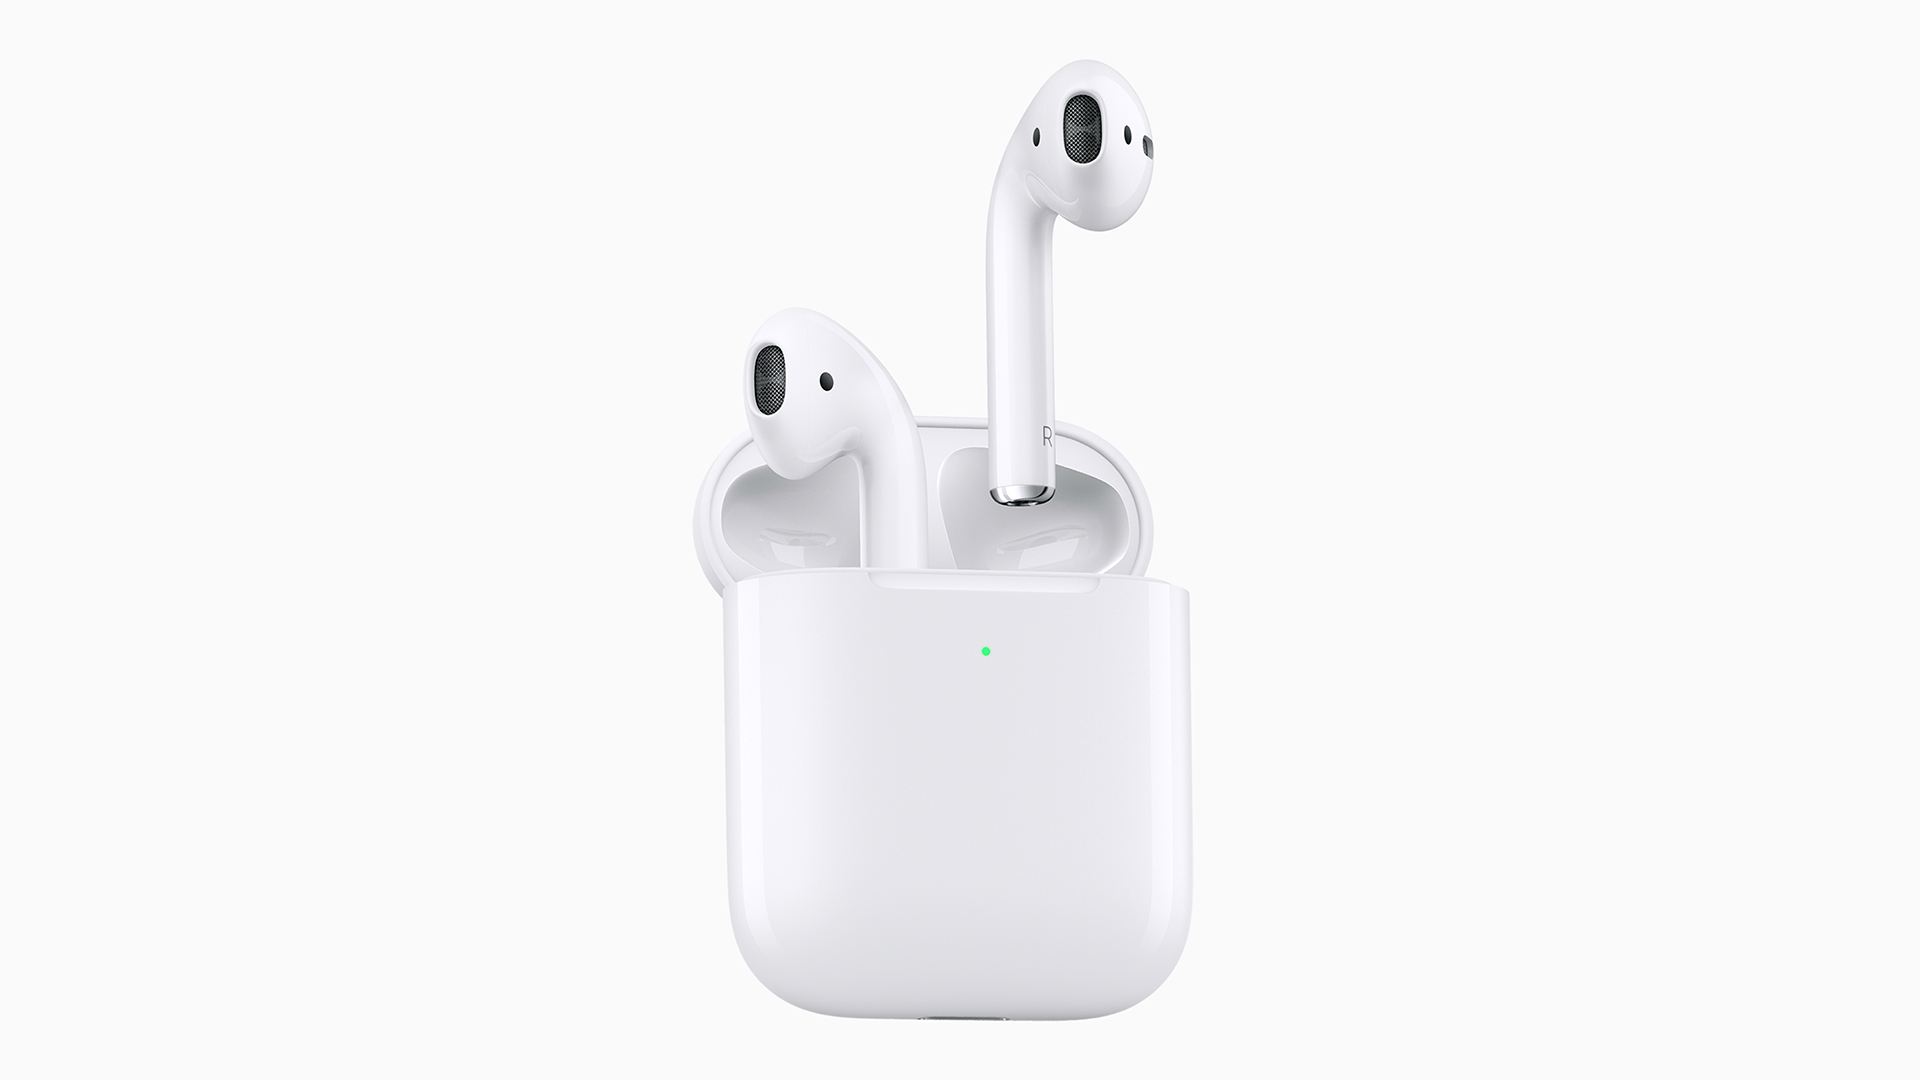 Free AirPods when you buy an iPhone 11 at Carphone Warehouse